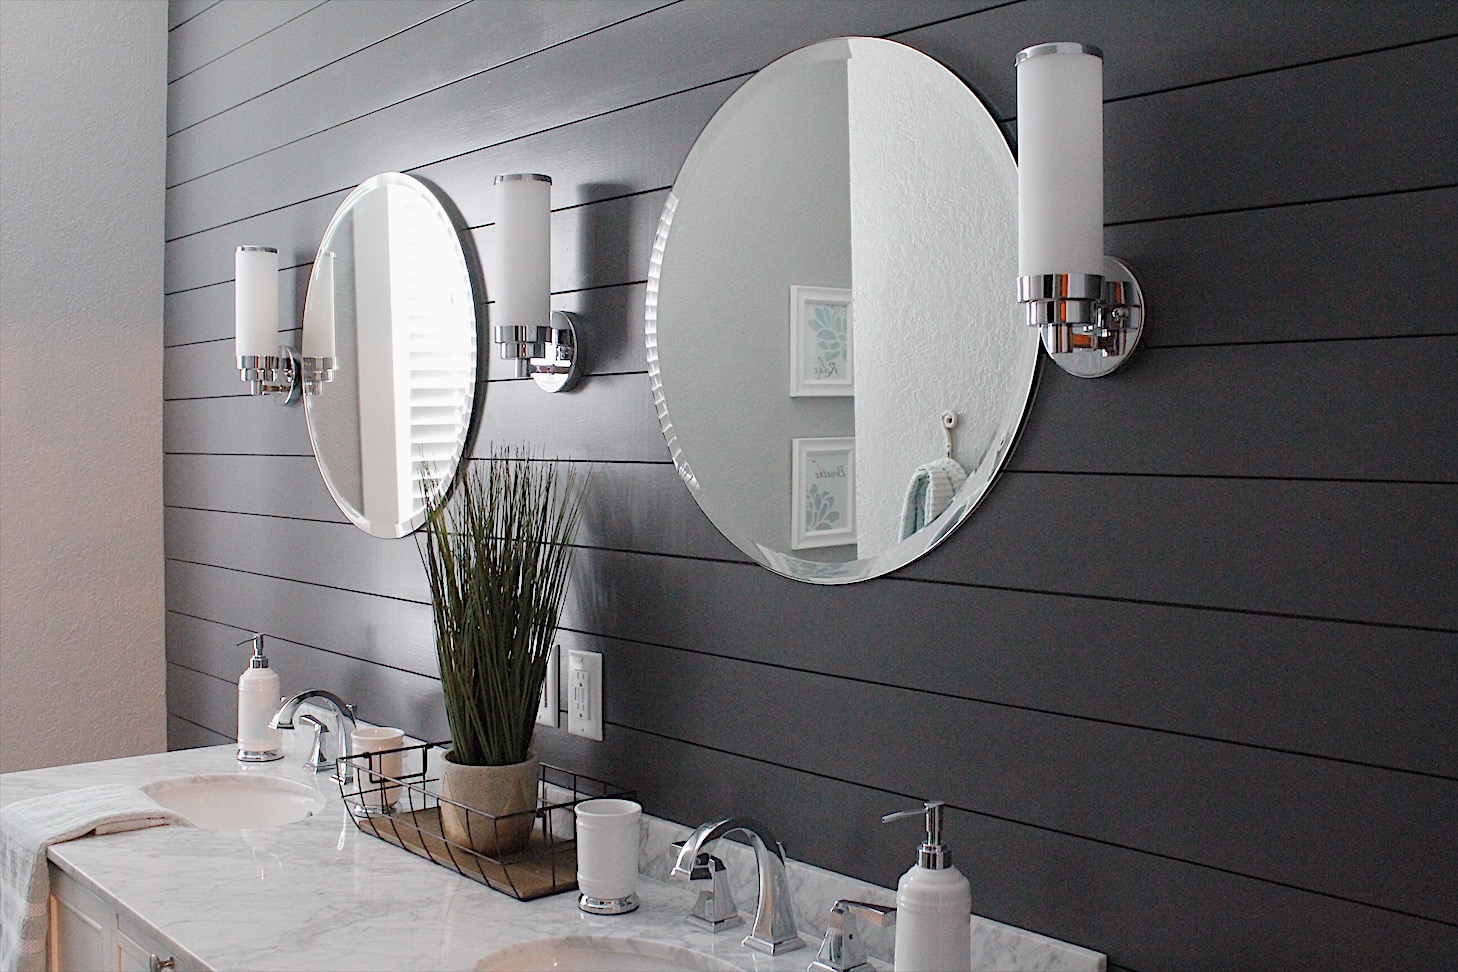 gorgeous bathroom remodel - moody and chic finishes